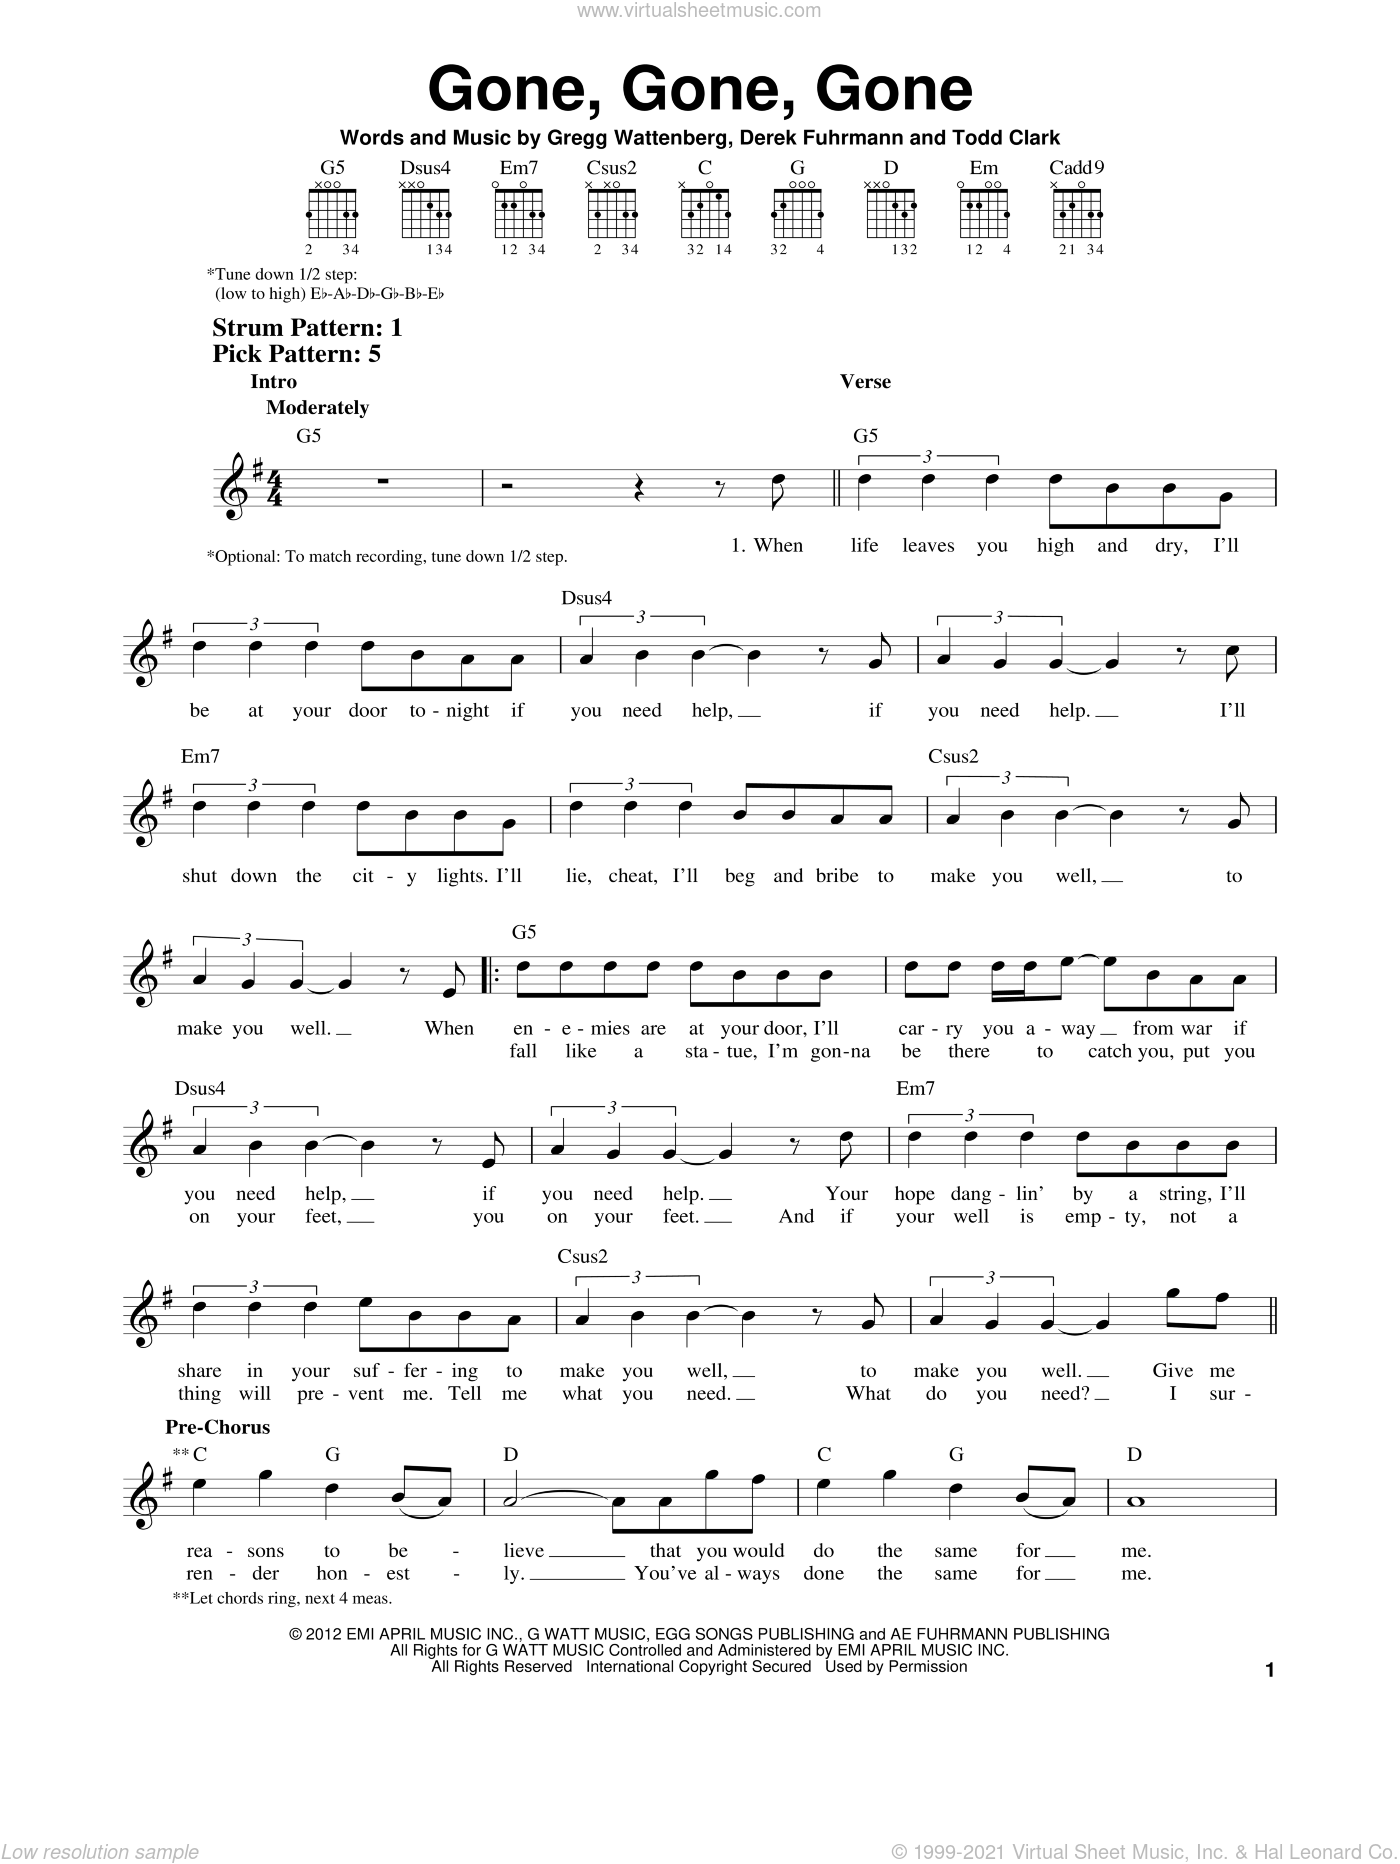 Gone, Gone, Gone sheet music for guitar solo (chords) by Phillip Phillips, Derek Fuhrmann, Gregg Wattenberg and Todd Clark, easy guitar (chords)